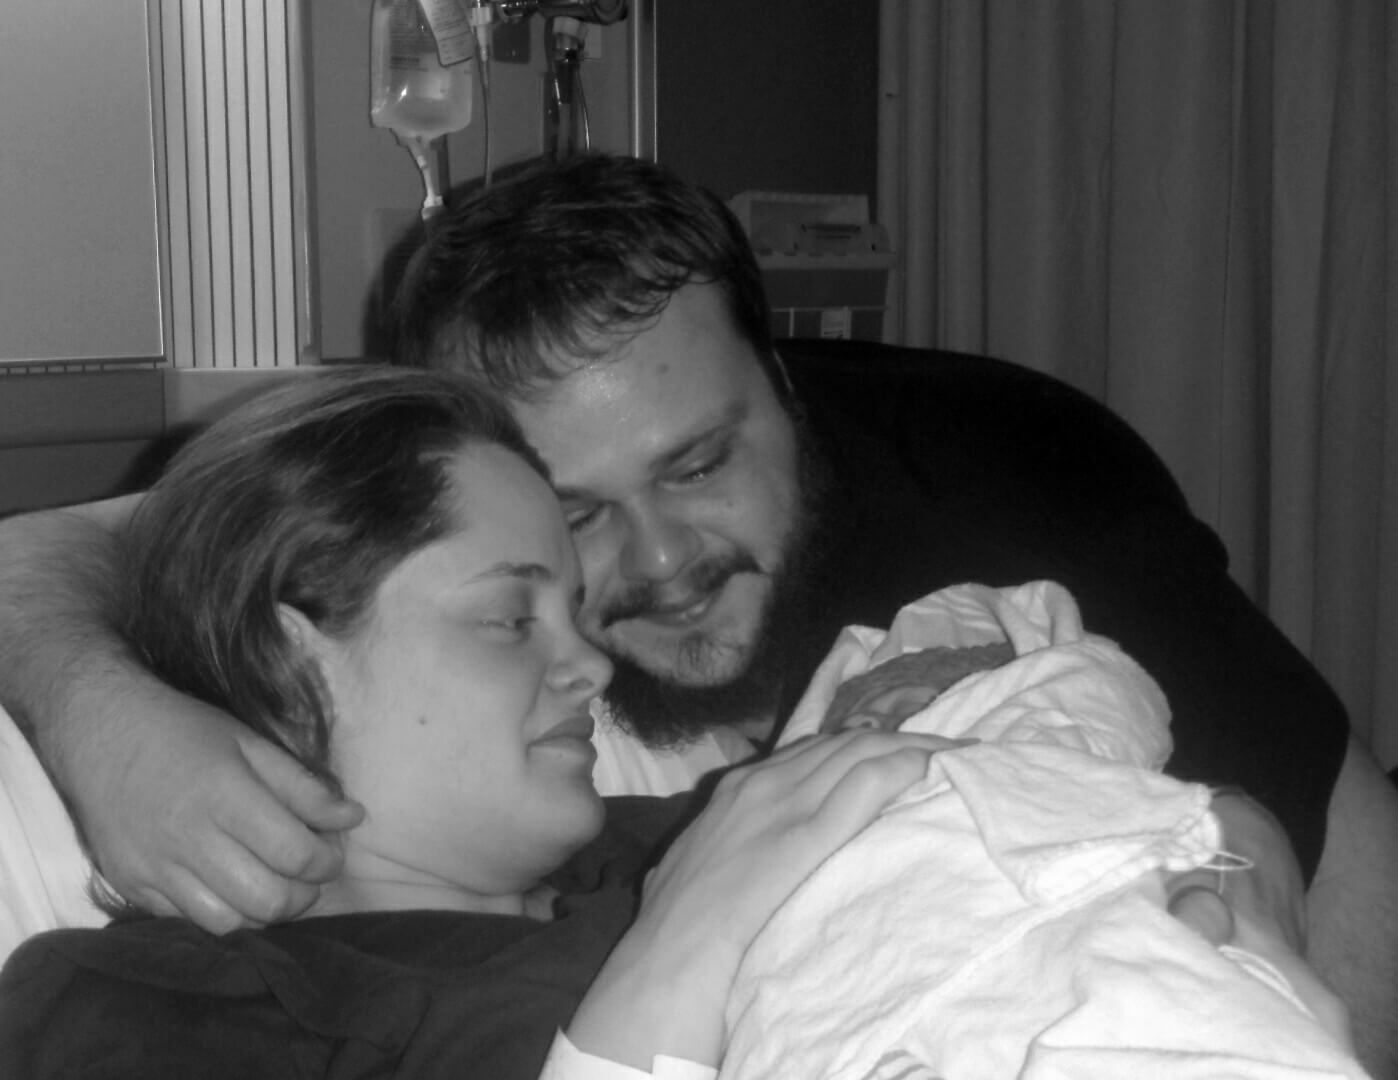 Reading Birth Stories Helped Kelli During Her Hospital